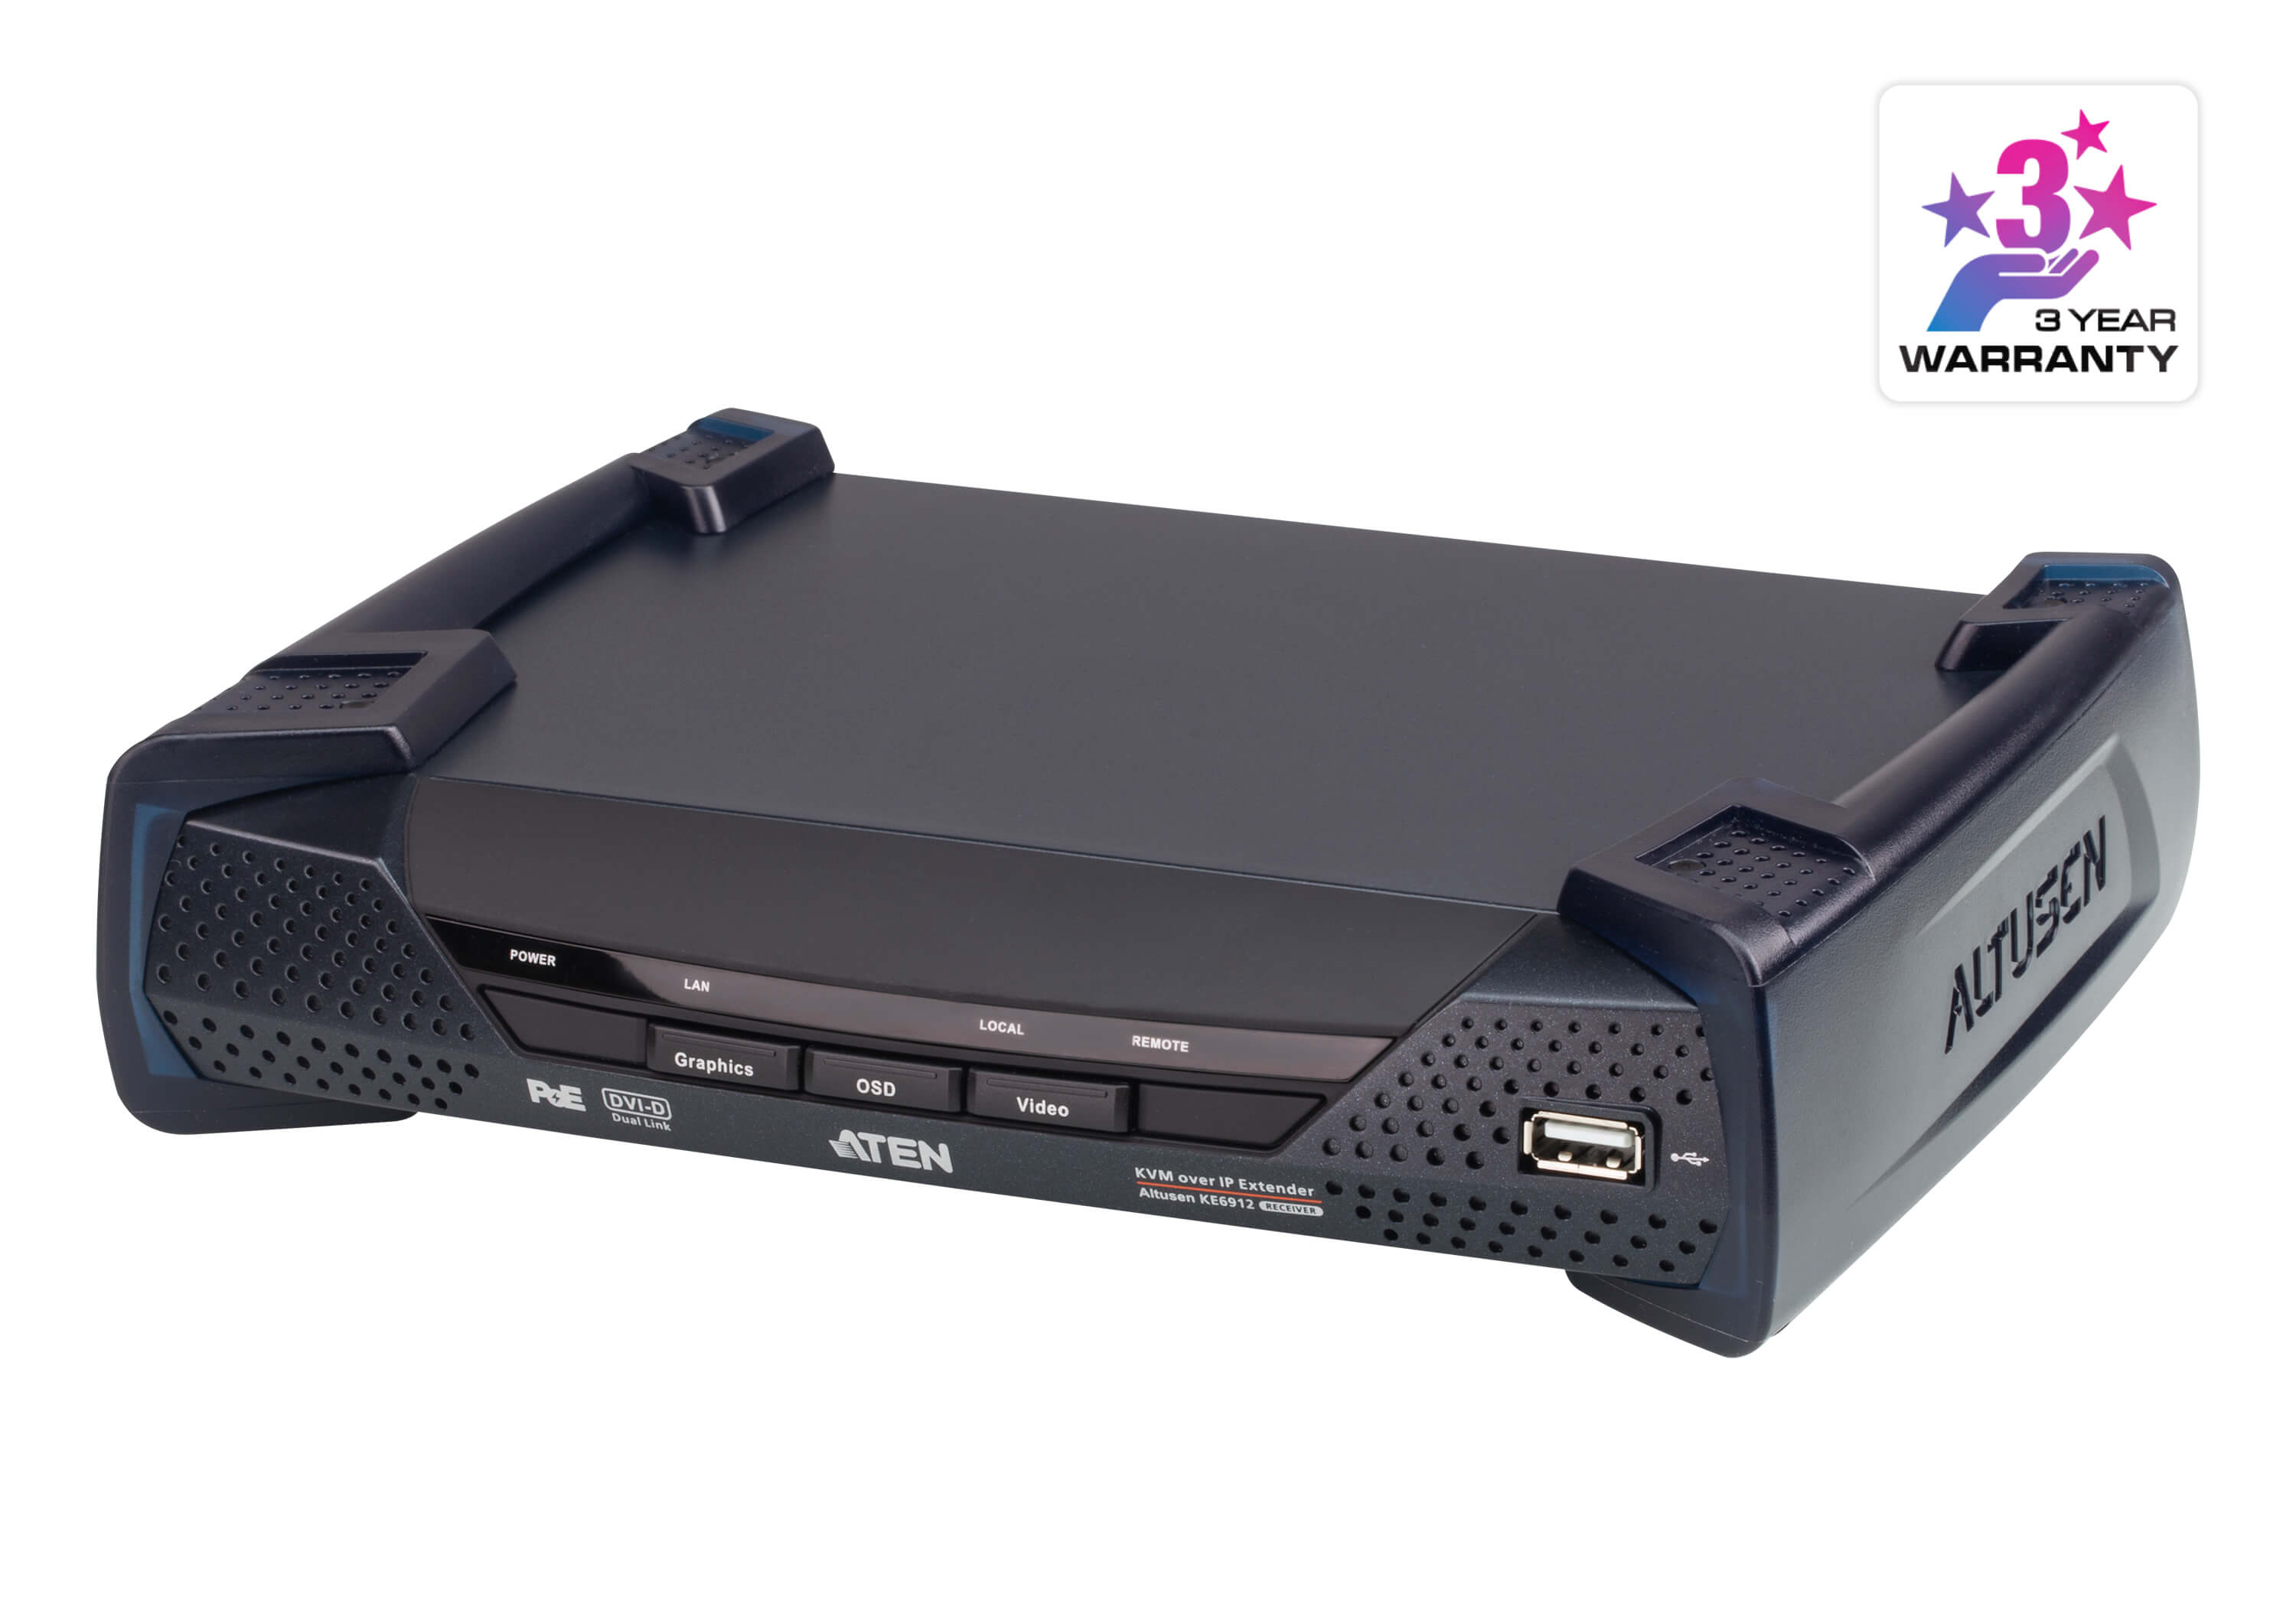 Aten DVI Dual Link KVM over IP Receiver with DC Power + Power over Ethernet support, supports up to 2560 x 1600 @ 60 Hz, USB and 3.5mm Audio